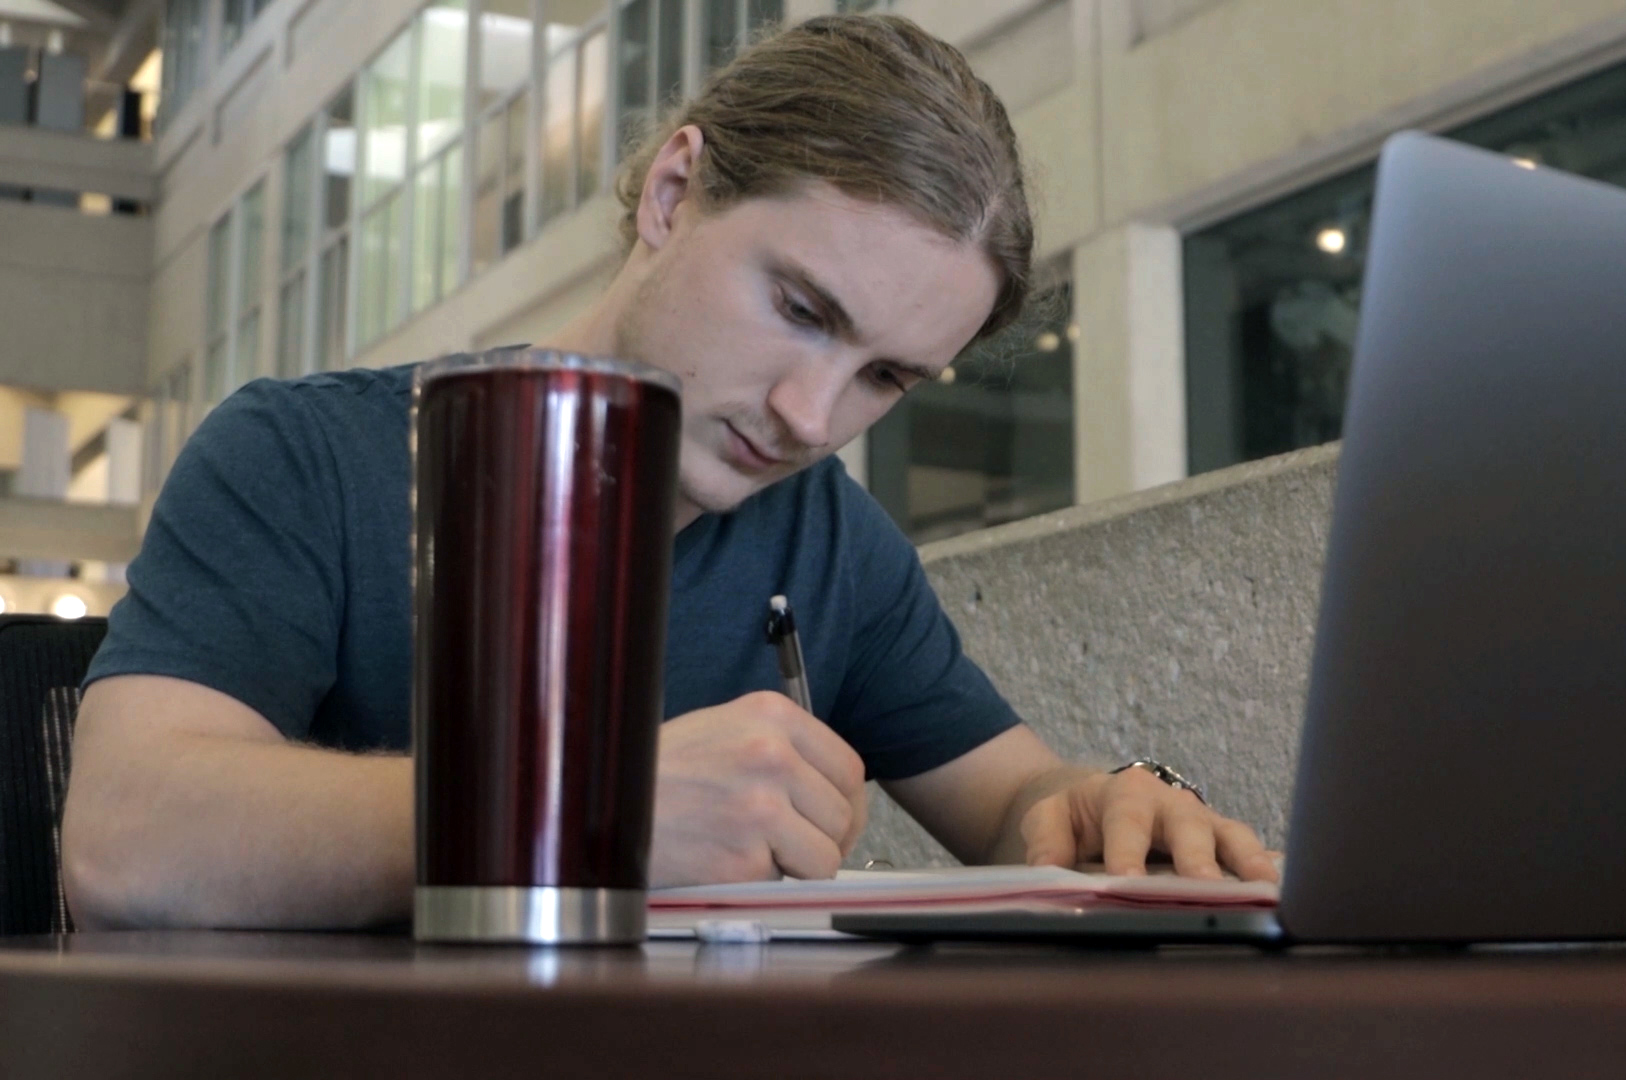 Texas A&M statistics major Alex Peters '21 works on his First Year Eats data analysis project in the first-floor Blocker Building atrium